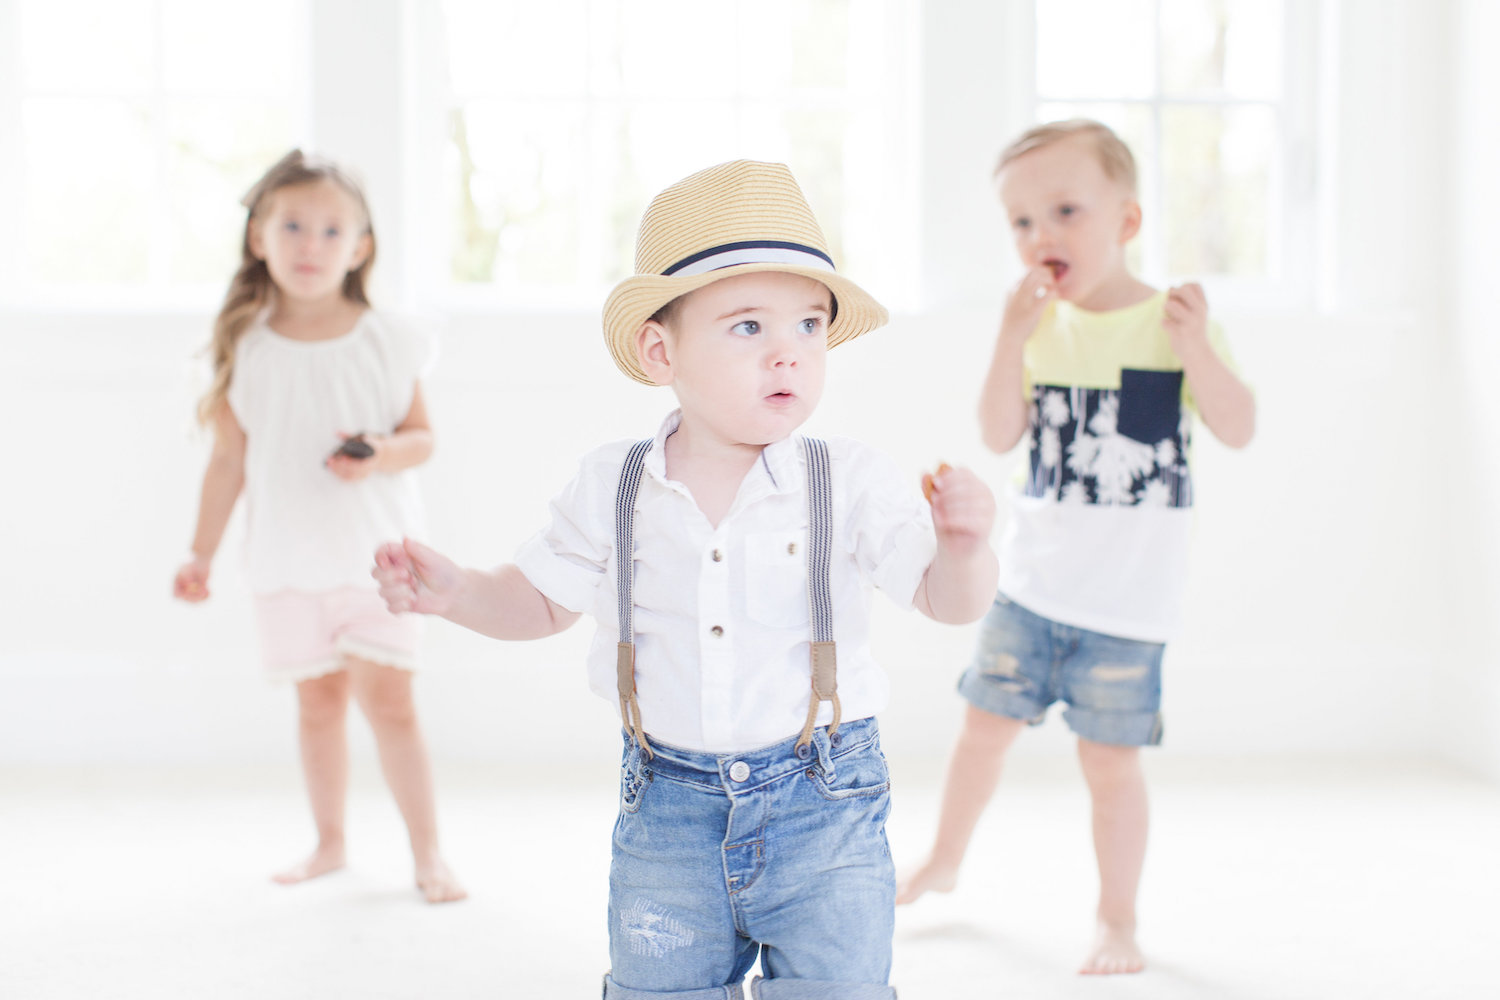 H&M Kids Spring Fashion Monika Hibbs baby boy